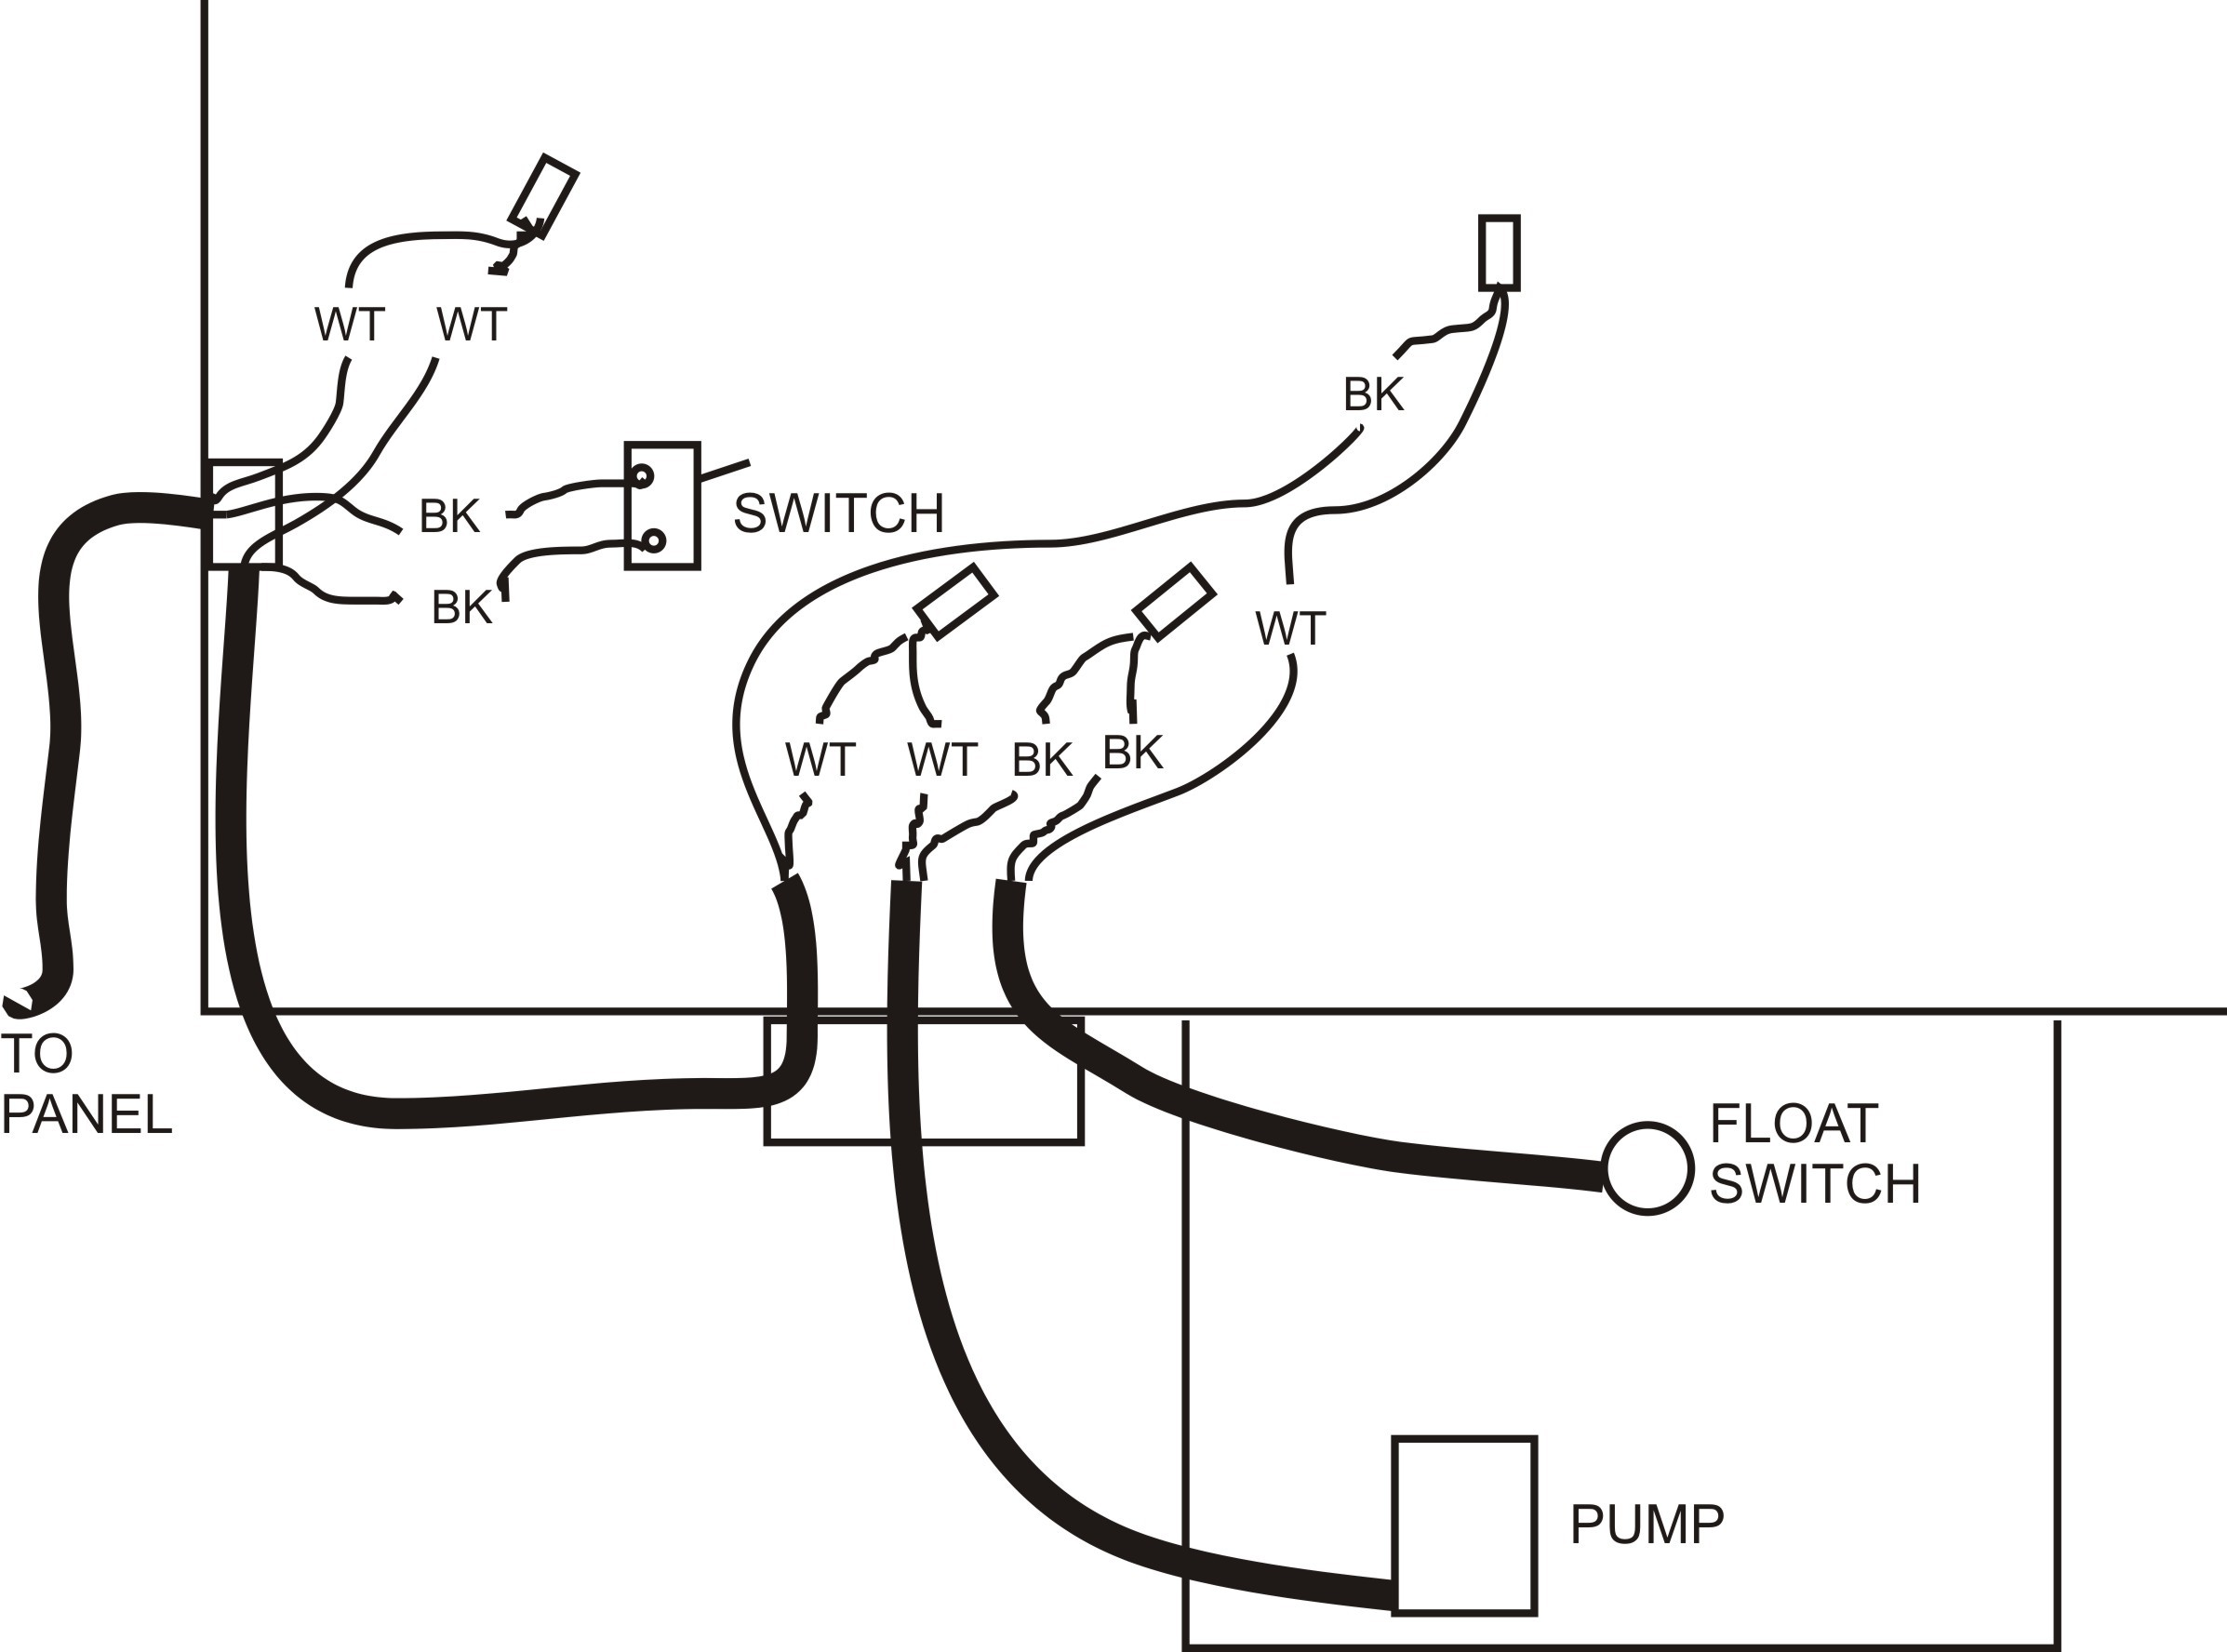 Septic Pump Wiring Diagram How to Wire A Septic Tank Pump